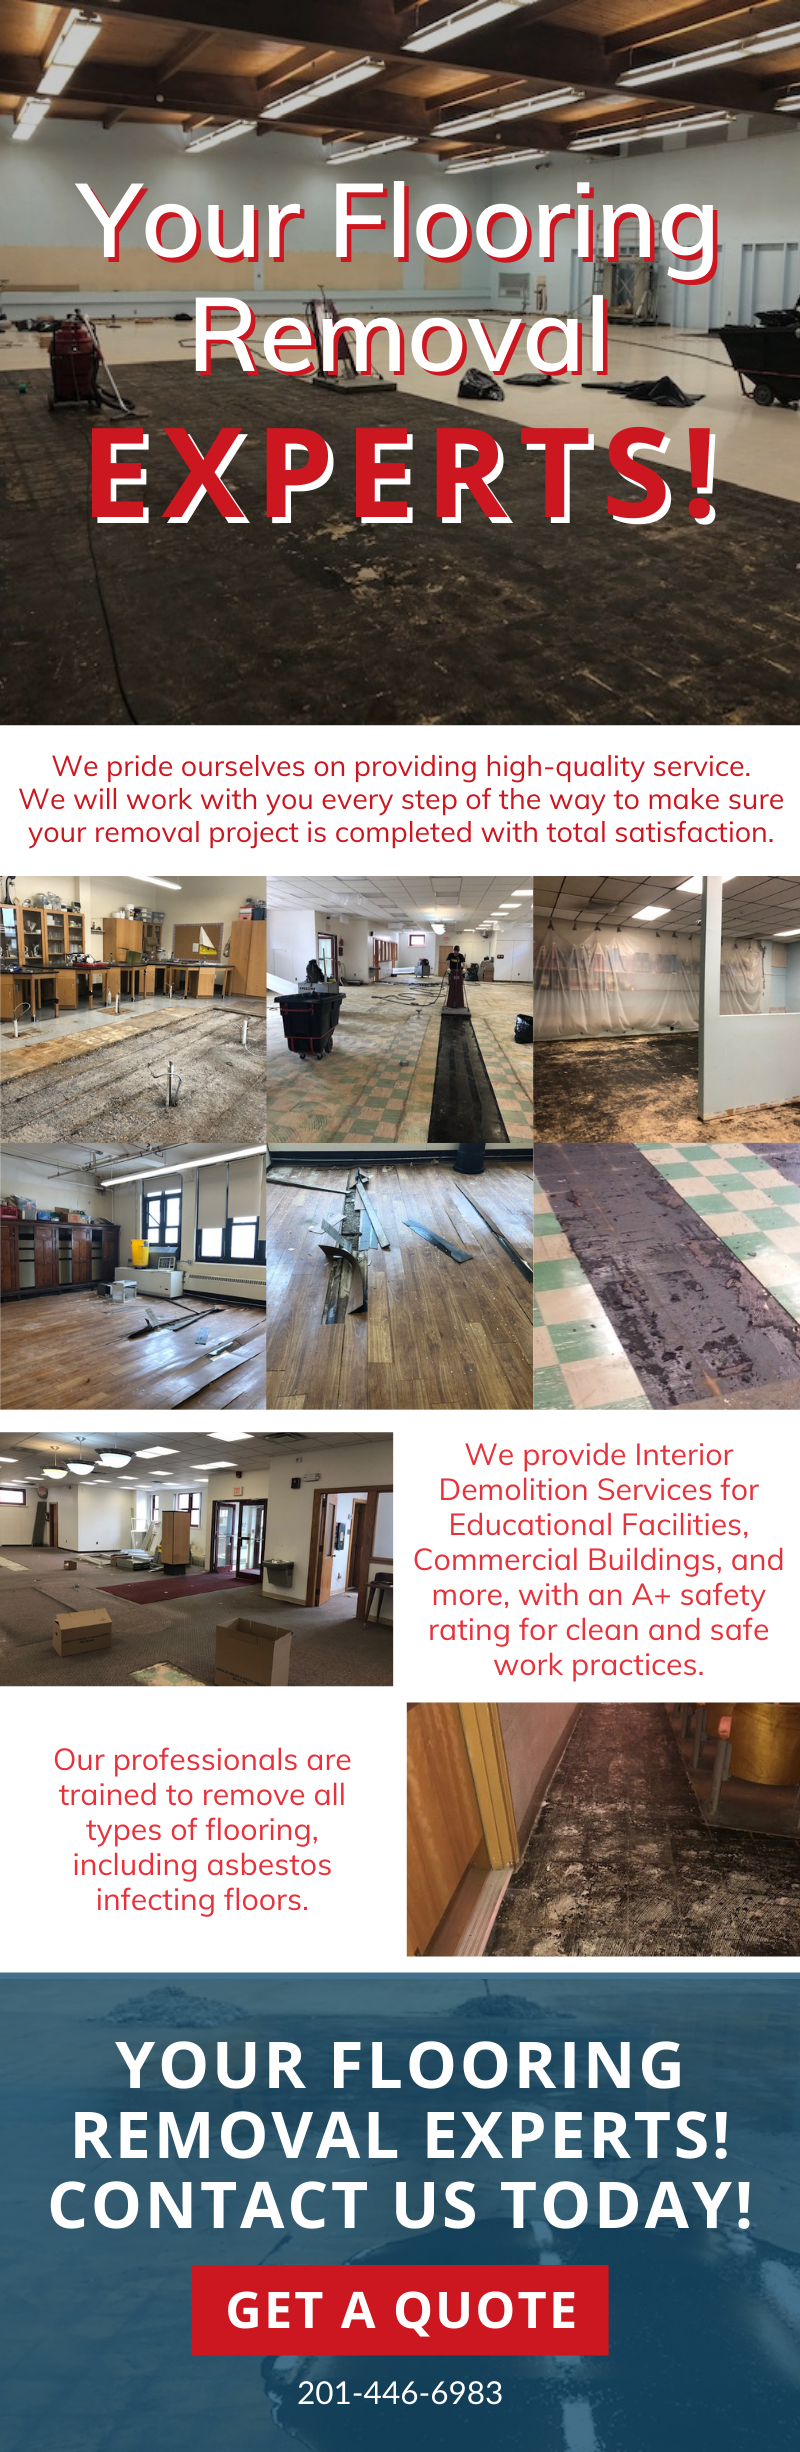 Your Flooring Removal Experts! 3